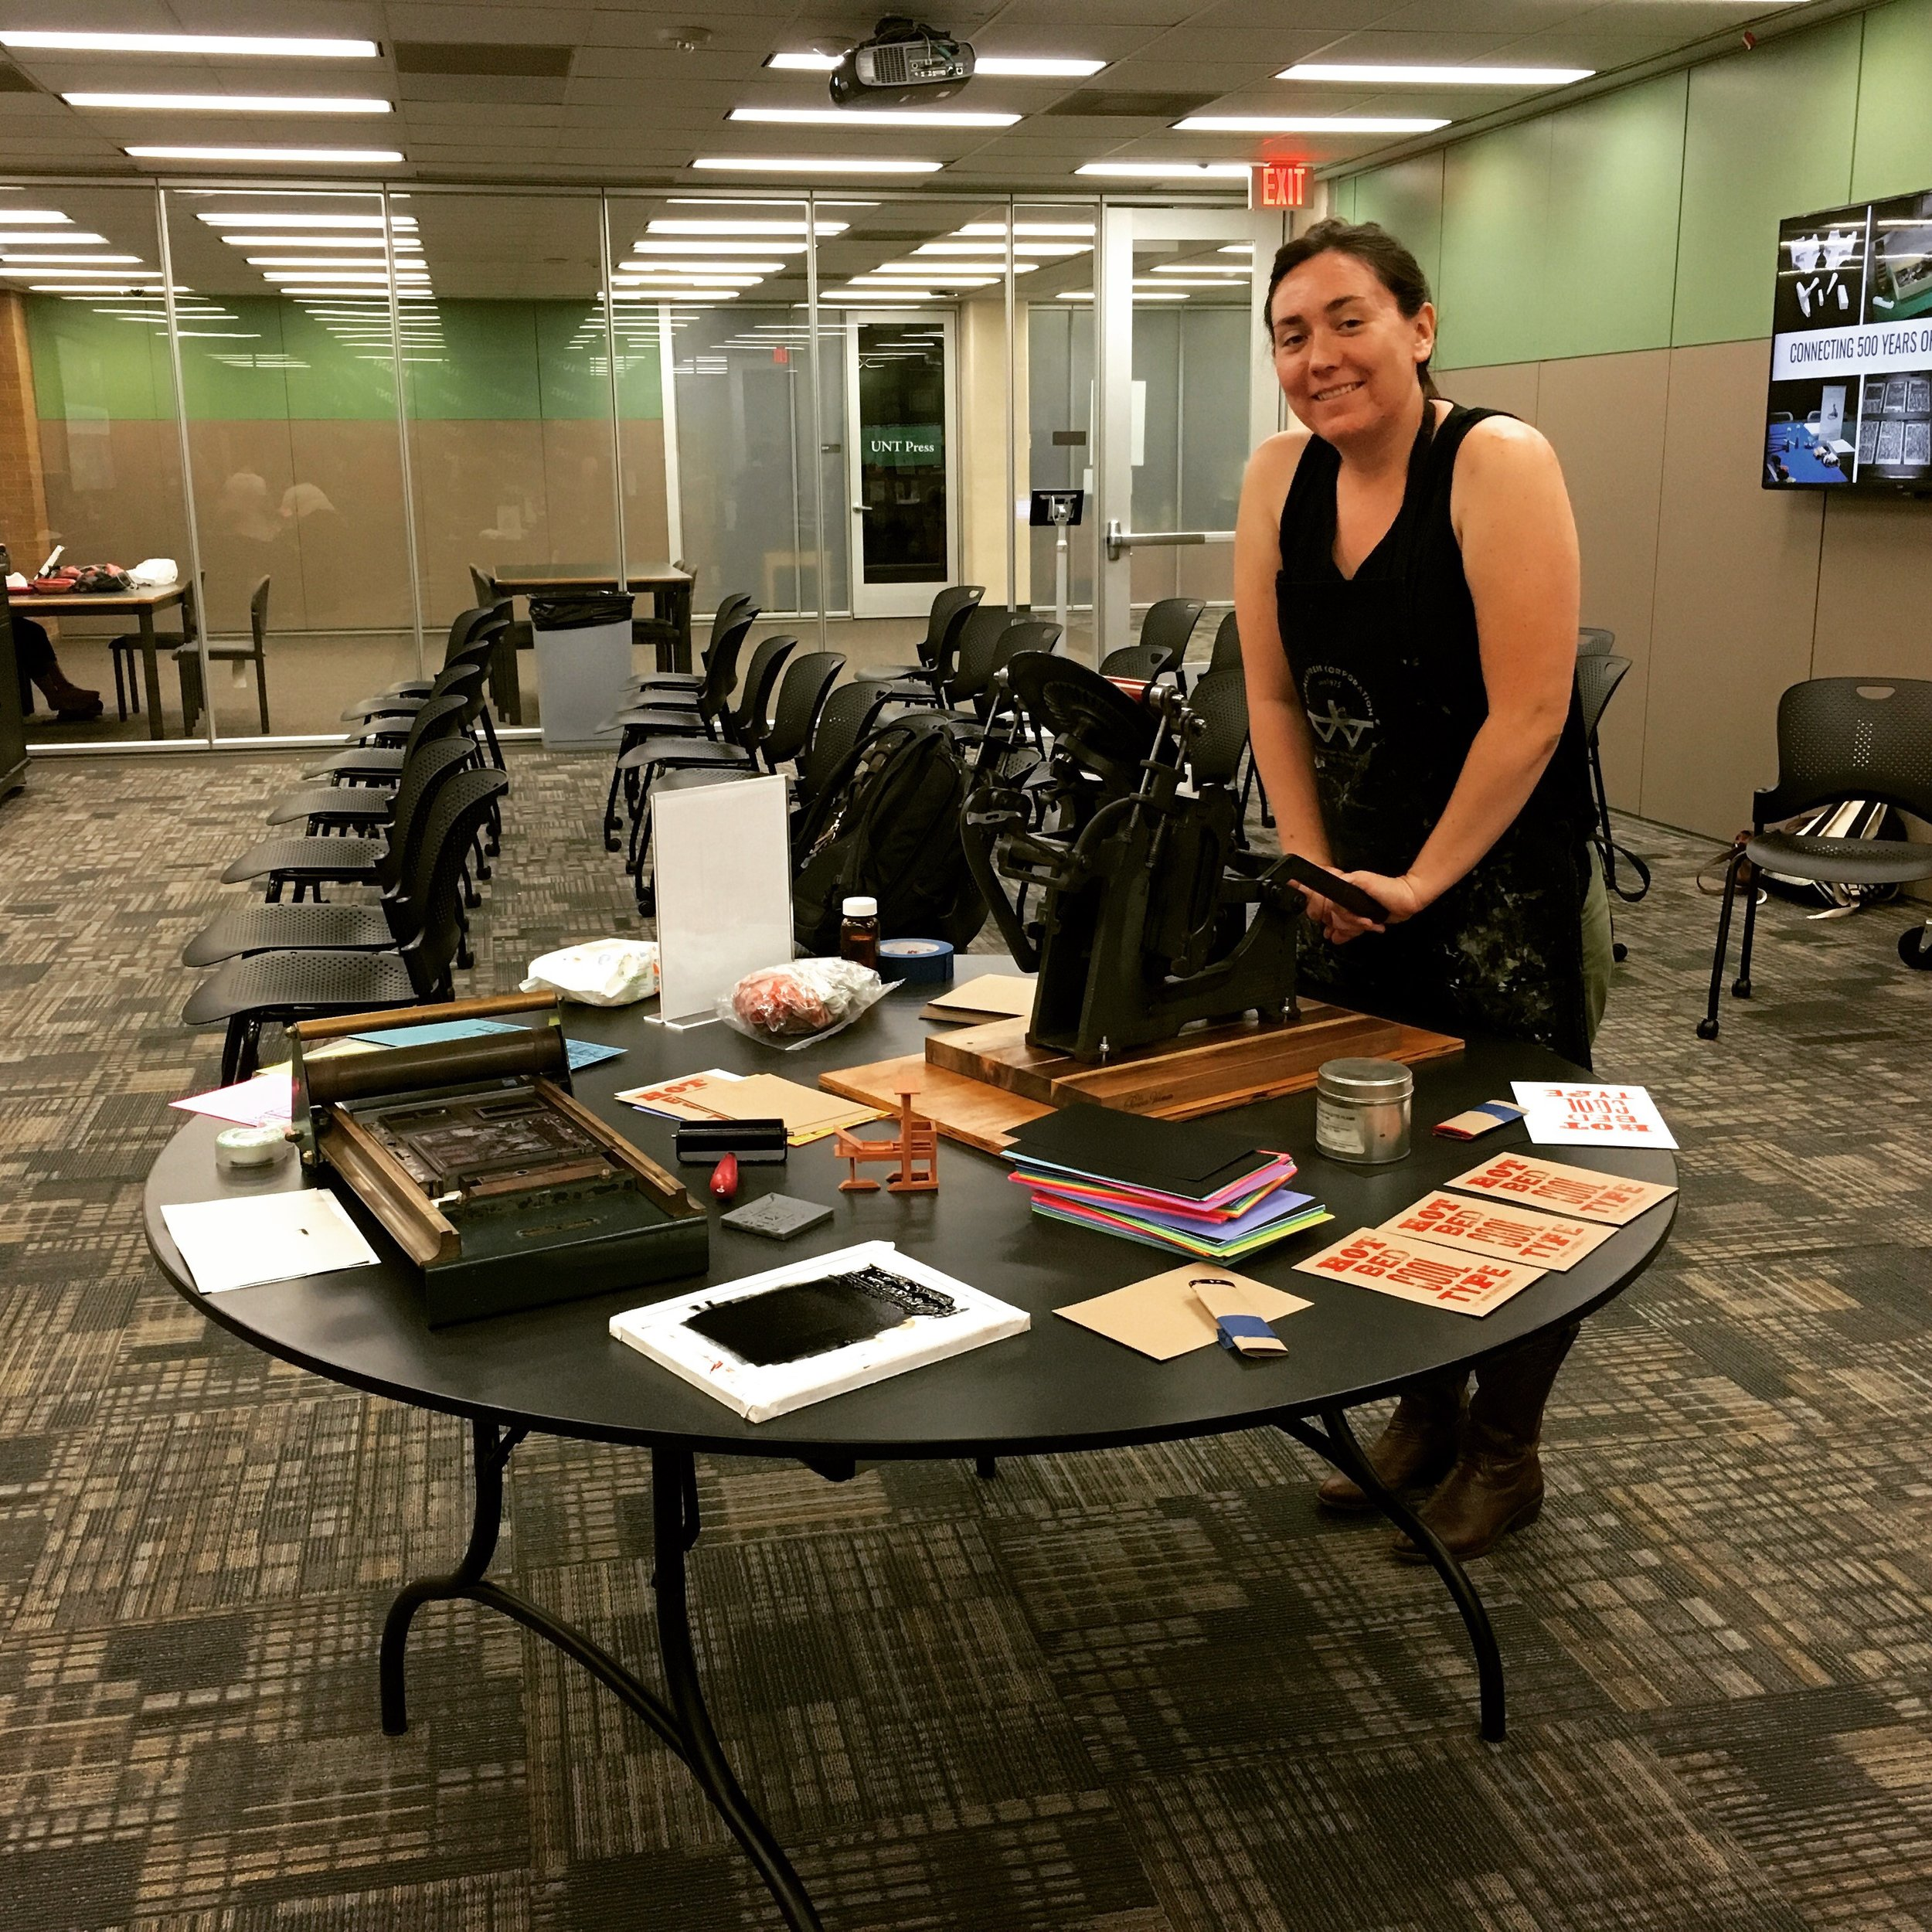 Artist and 3Dhotbed partner Syd Webb led a printing station with a platen press from her letterpress studio, 4 ACRE PRESS.